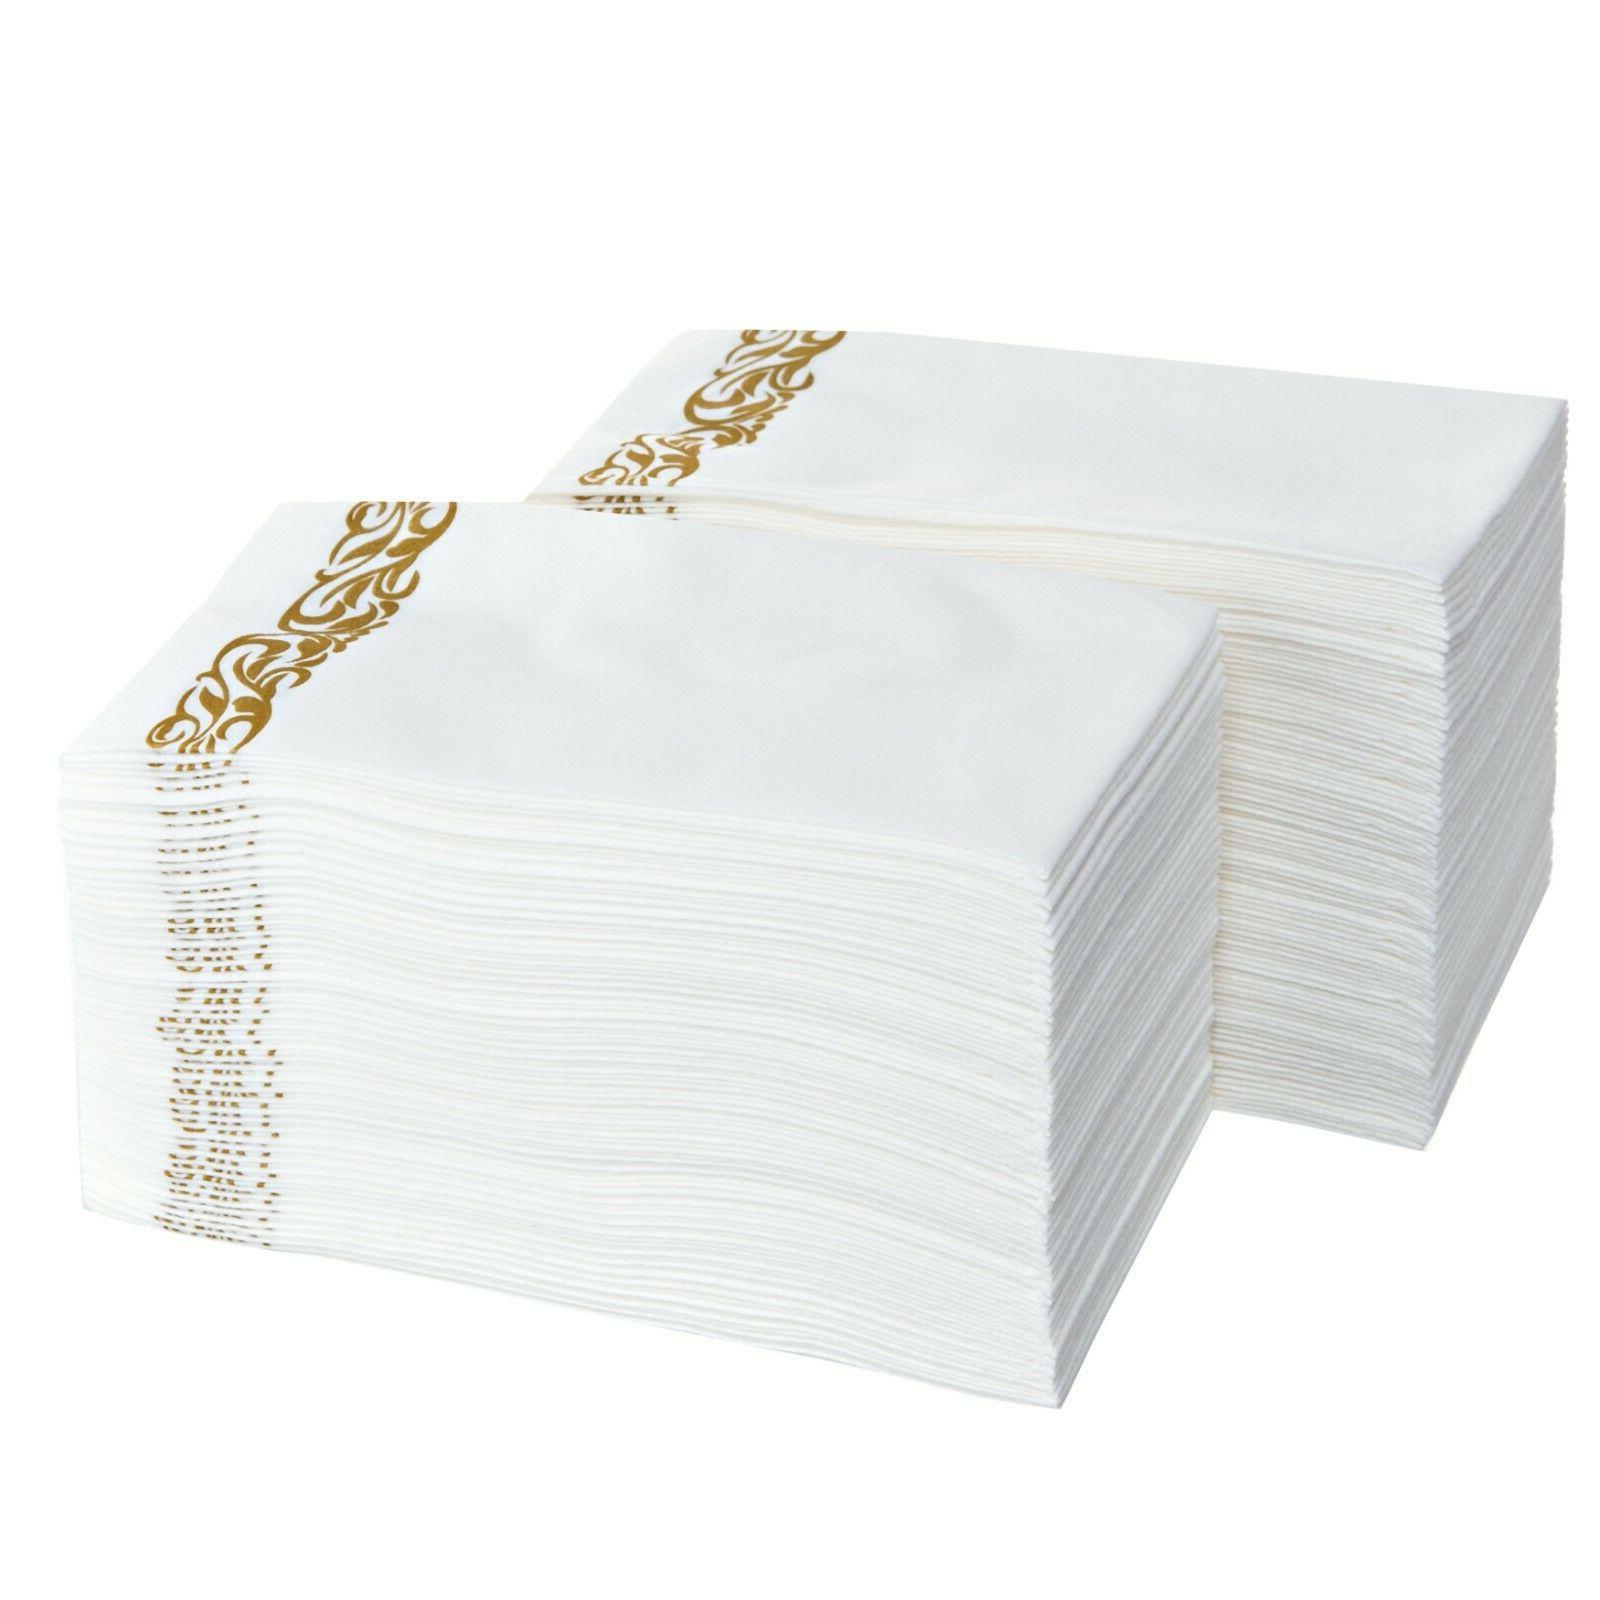 Disposable Hand Towels and Absorbent Guest